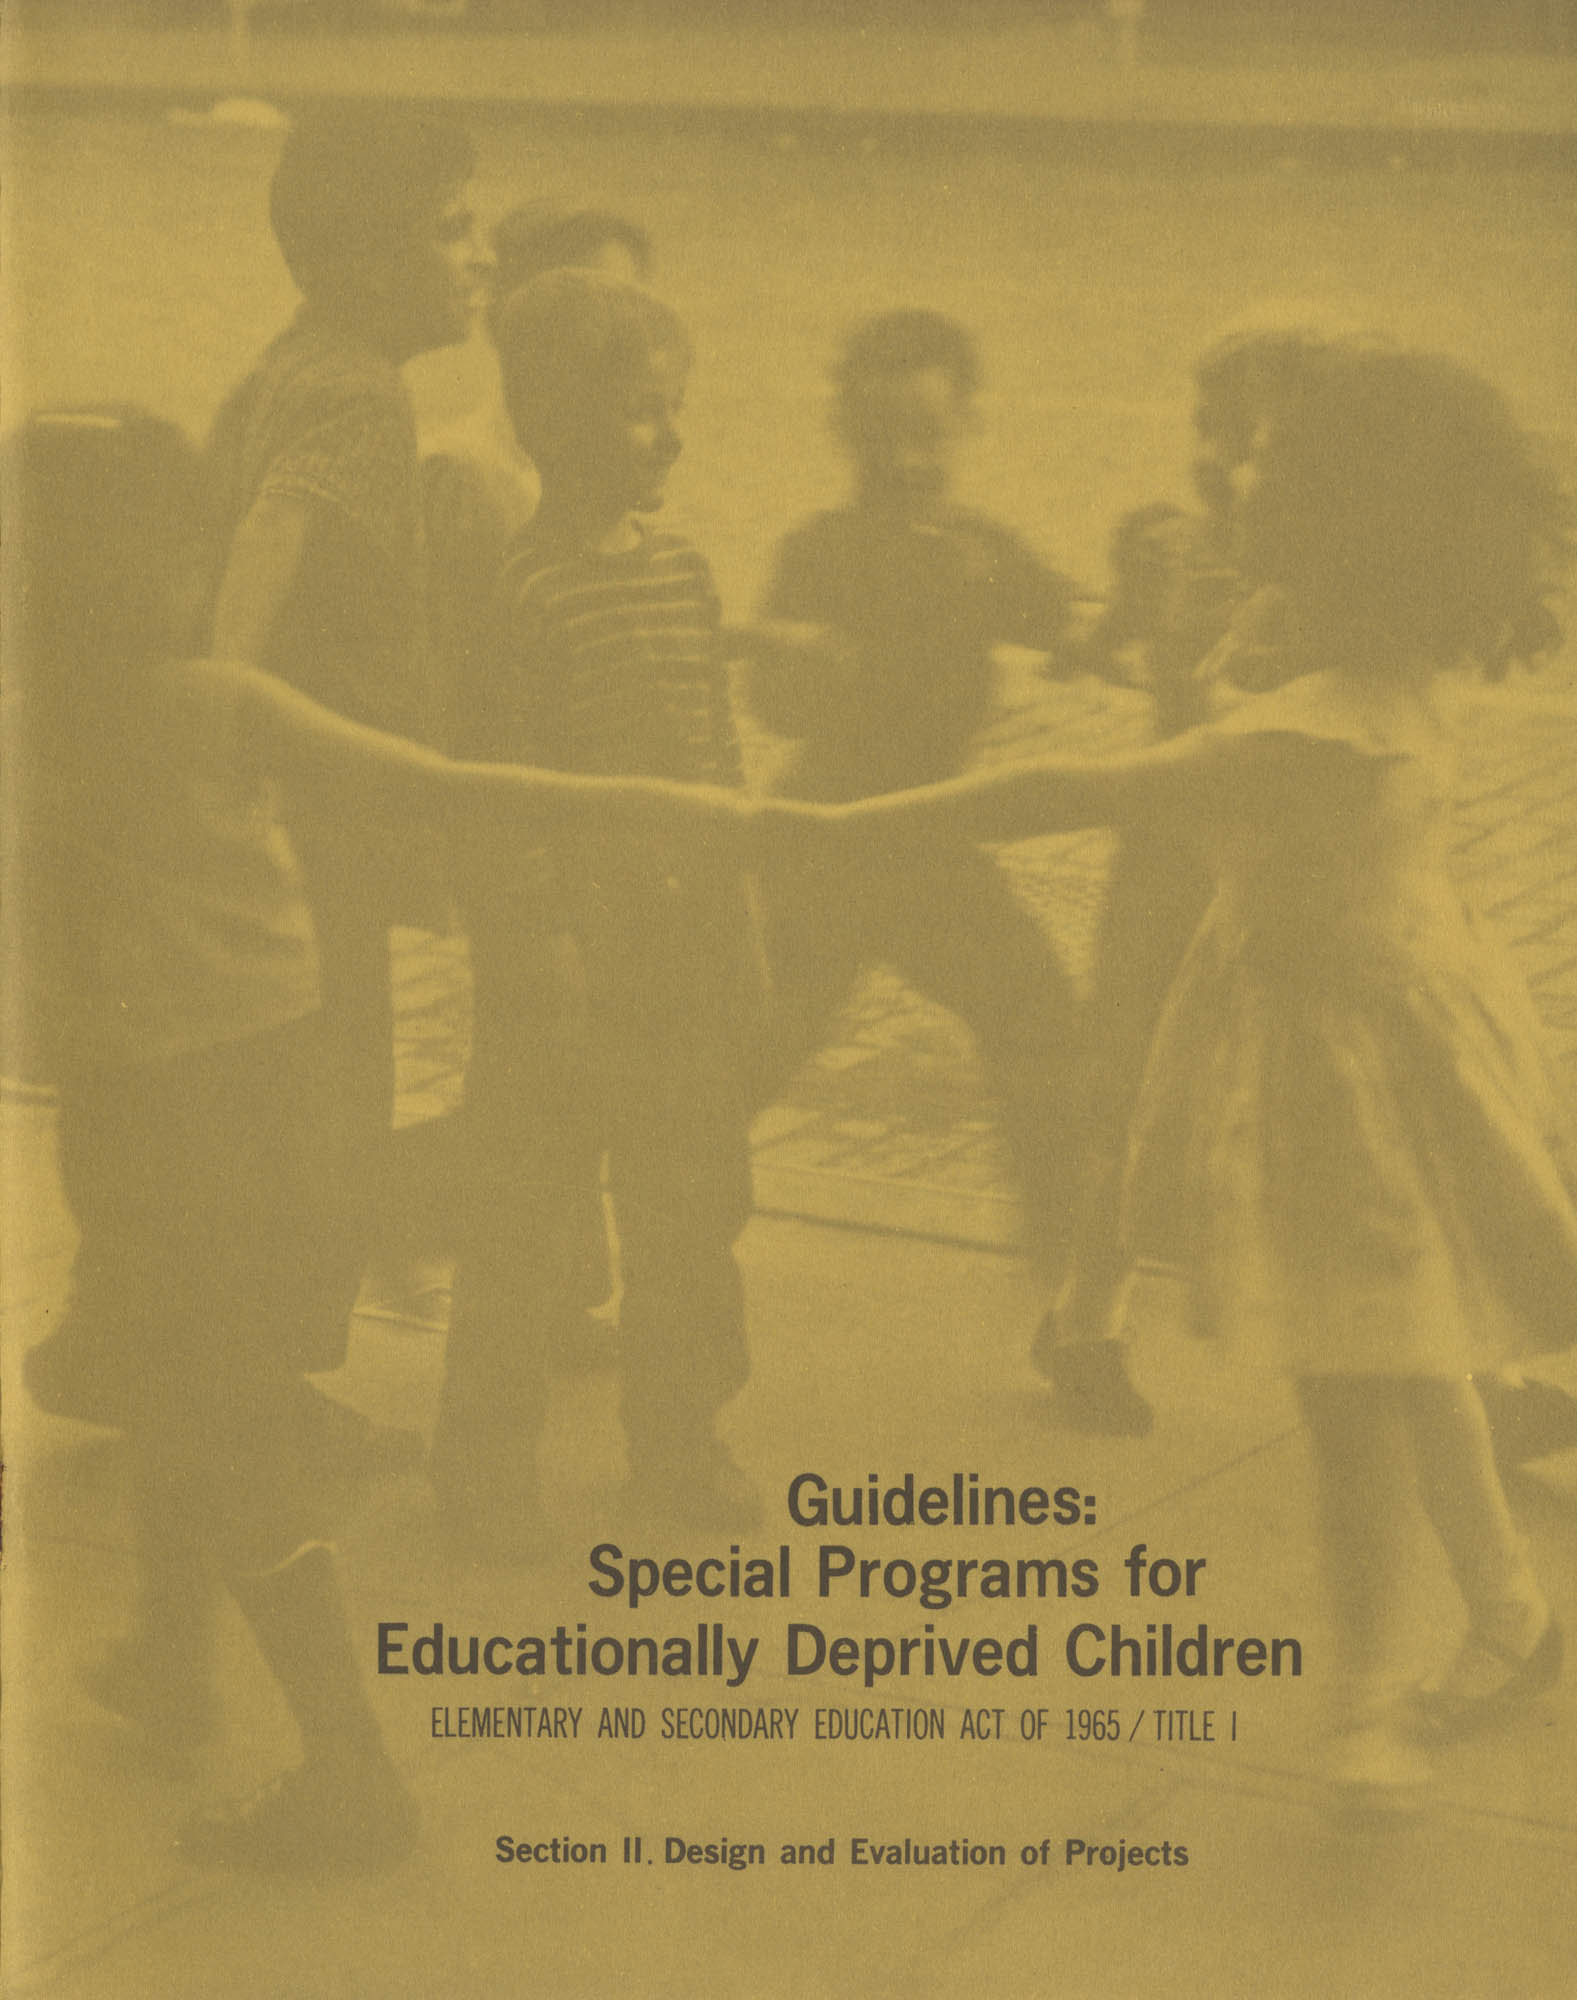 Guidelines: Special Programs for Educationally Deprived Children, Section II